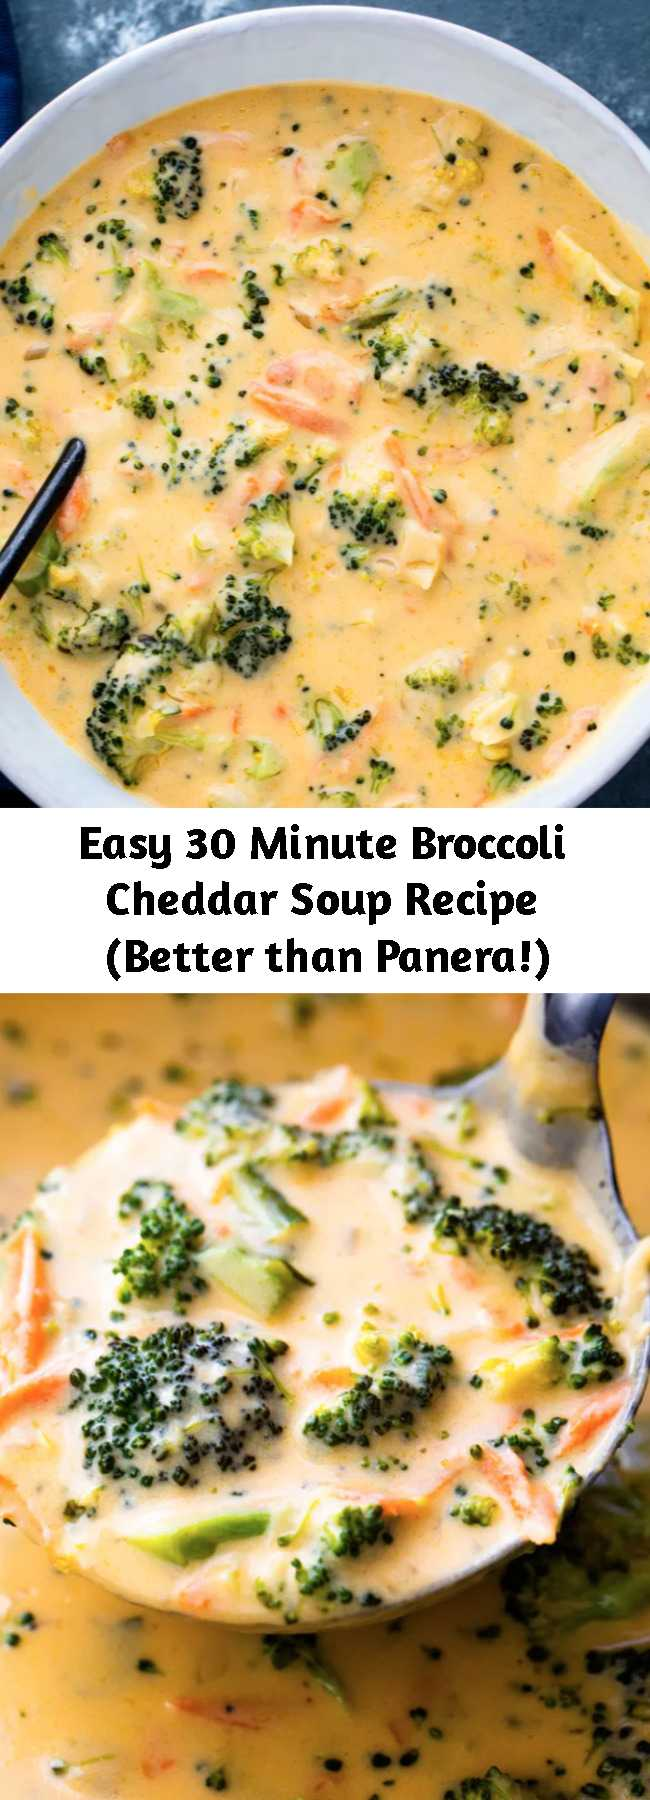 Easy 30 Minute Broccoli Cheddar Soup Recipe (Better than Panera!) - Healthy broccoli cheddar soup packed with carrots, broccoli, garlic, and cheese. This creamy velvety soup is much better than Panera's broccoli cheddar soup and can be made in under 30 minutes for a fraction of the price!